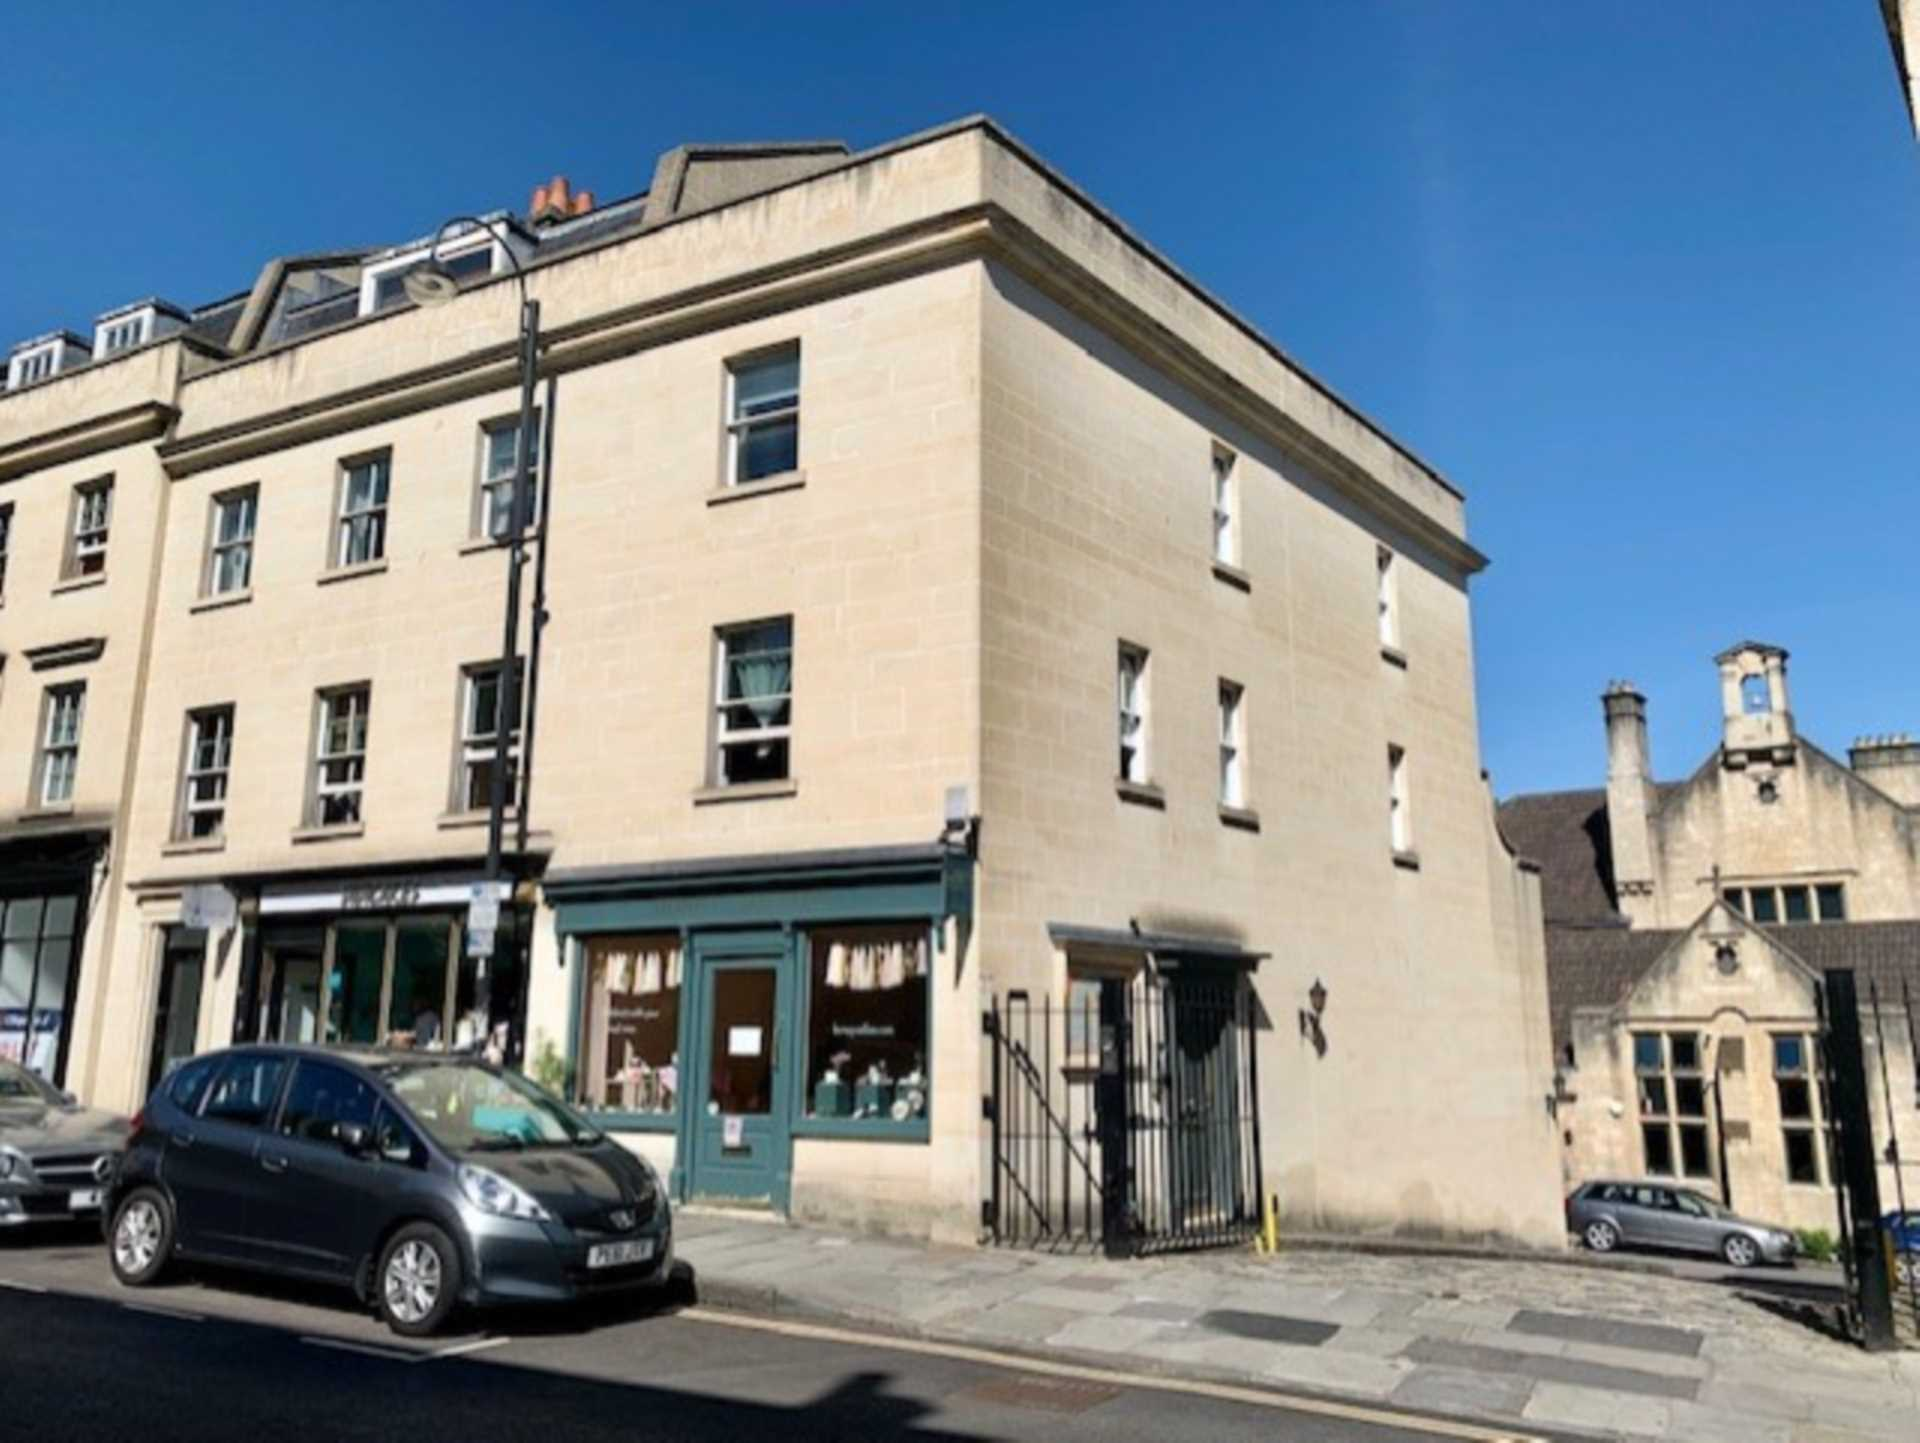 Swallows Property Letting - 2 Bedroom Flat, Walcot Street, Bath